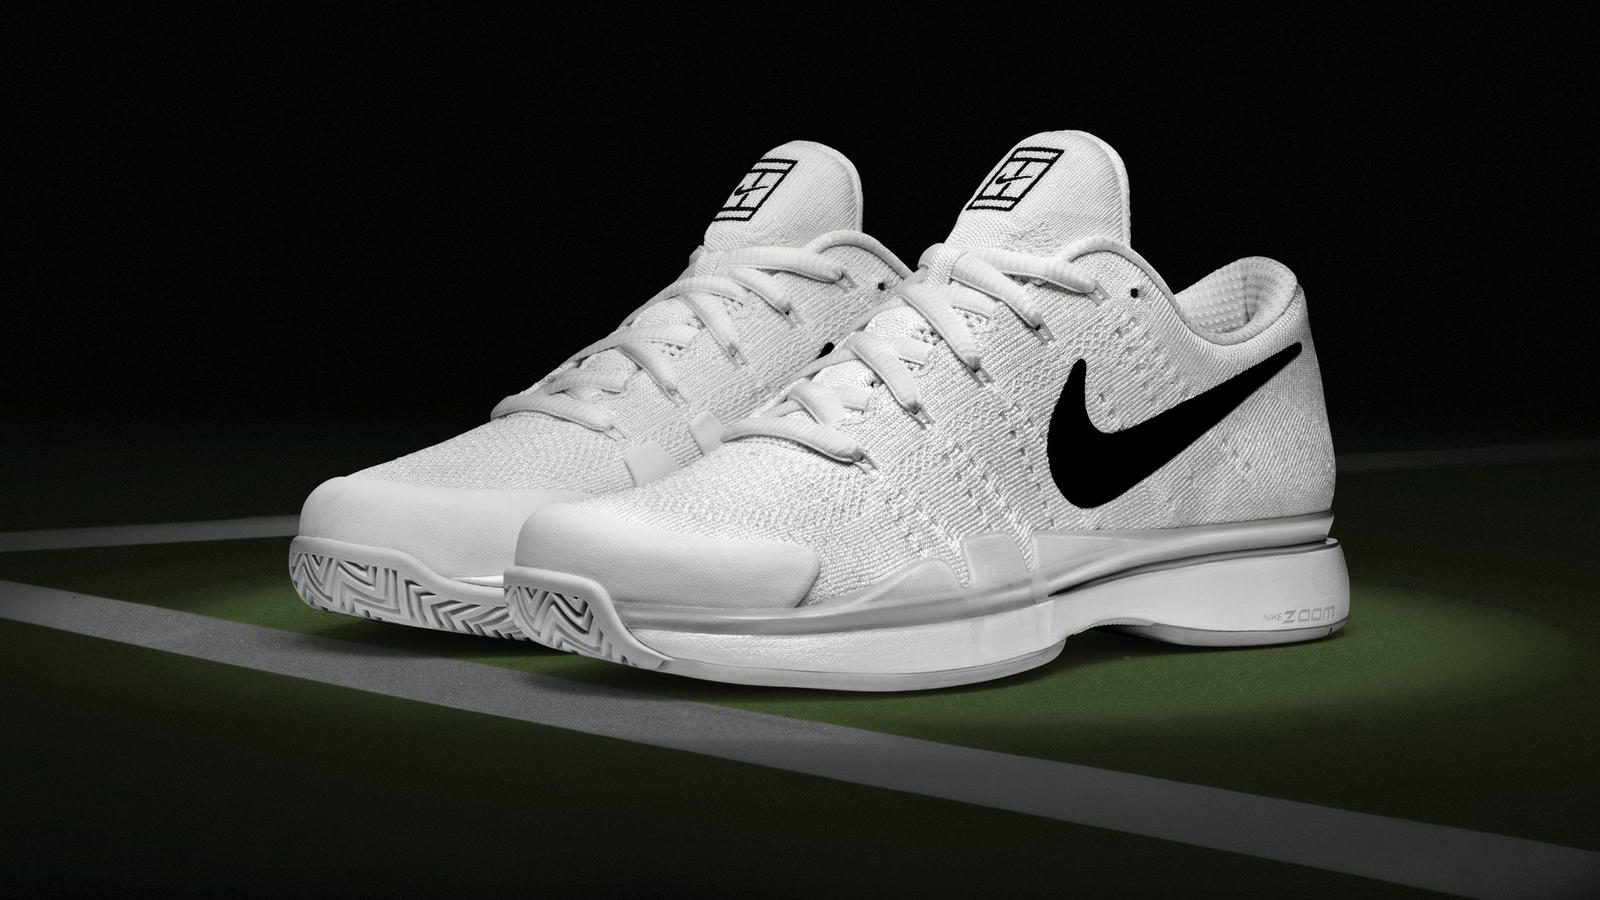 nike air max flyknit womens australian 2018 tennis champion